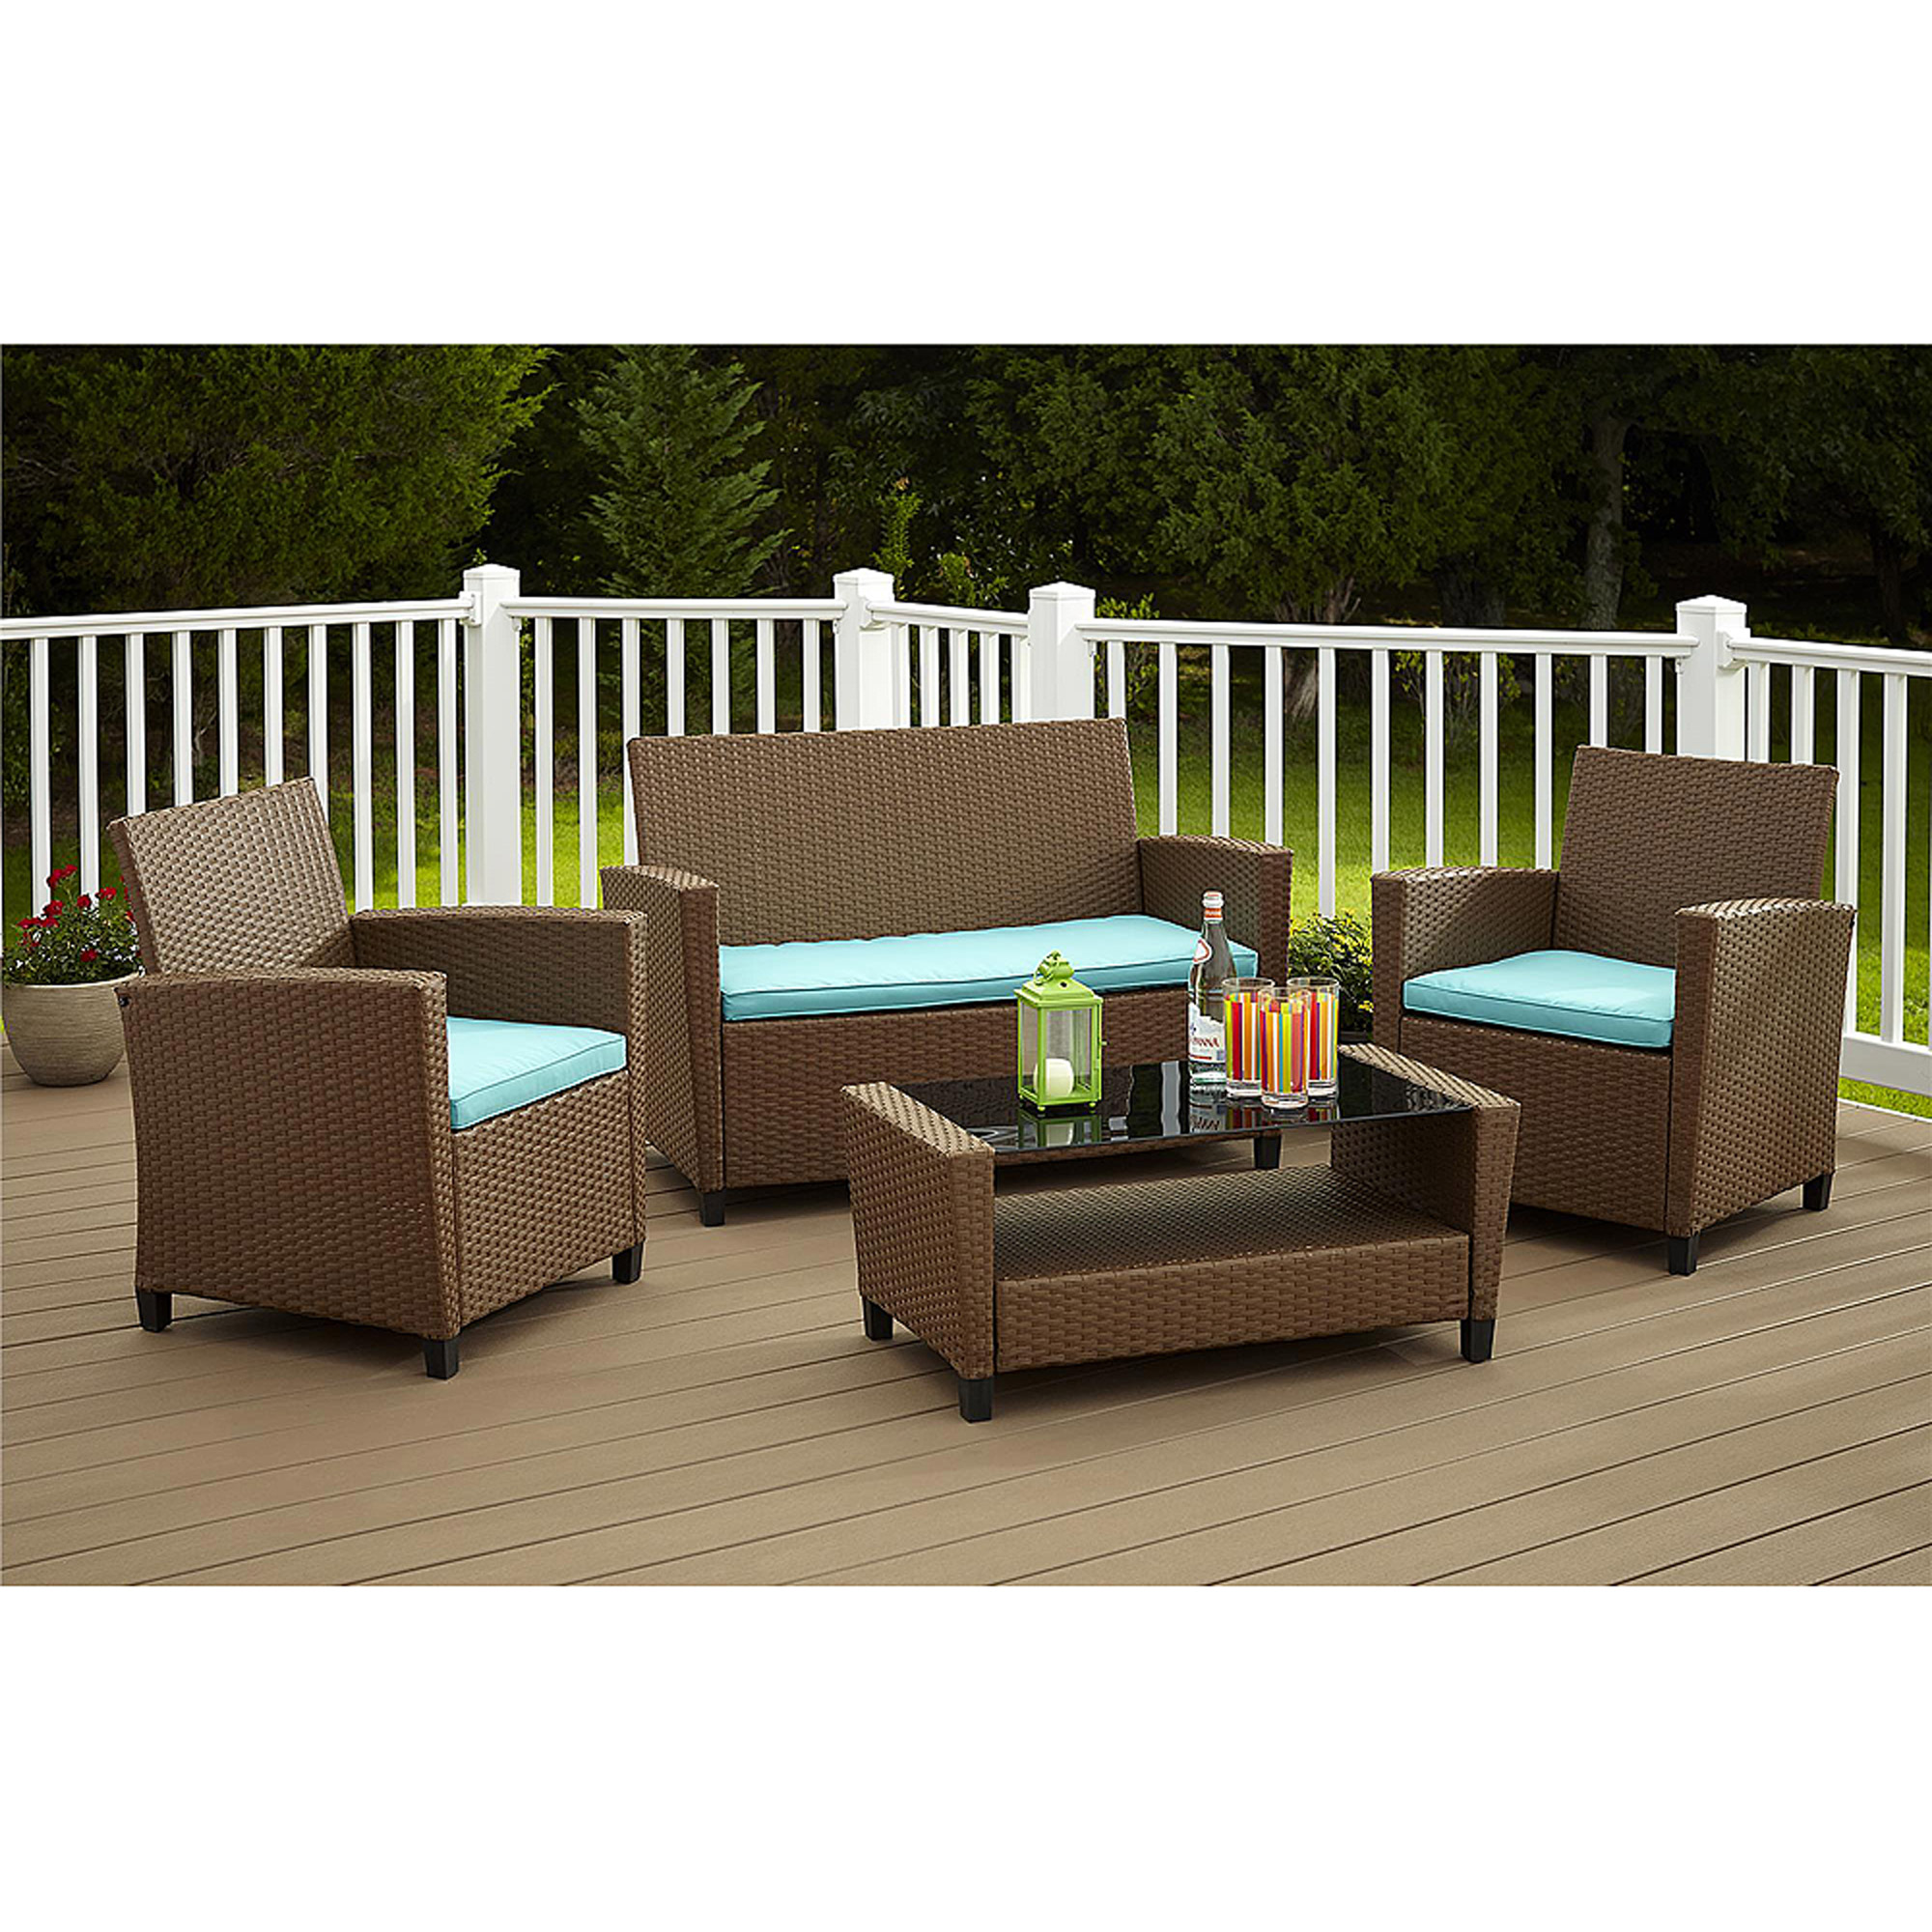 Royal 10 Piece Outdoor Wicker Patio Furniture Set 10b